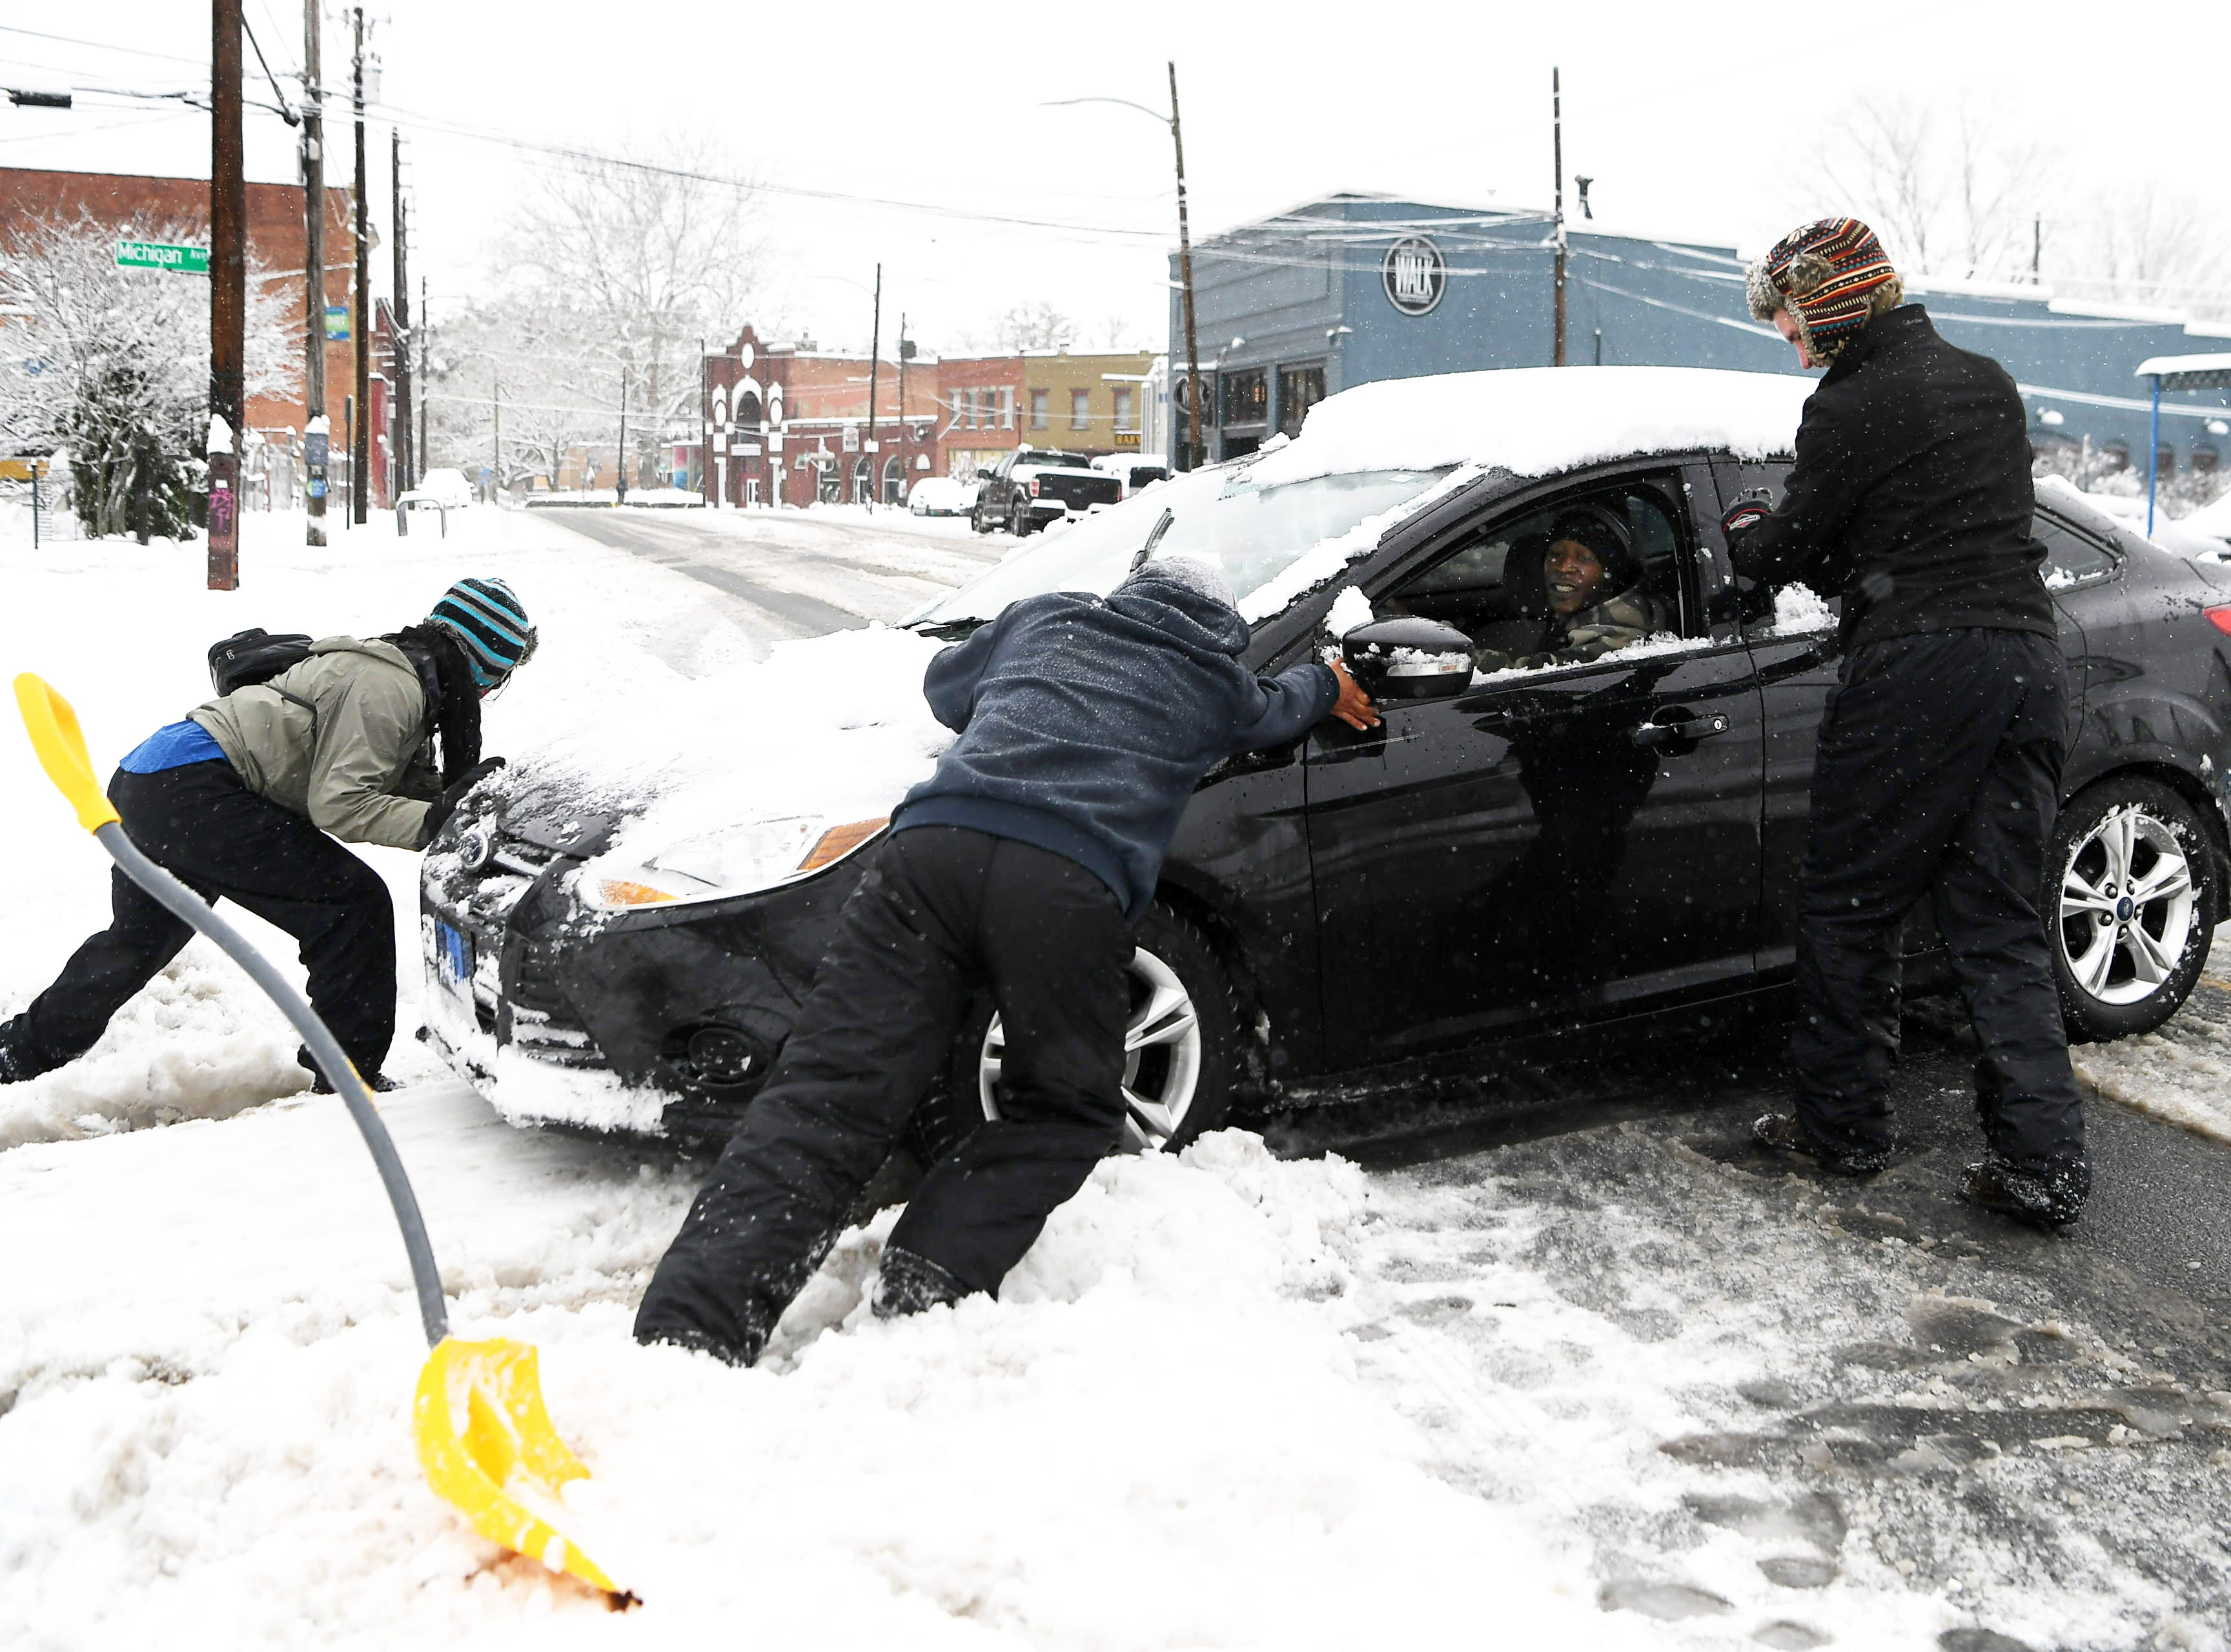 From left, Elizabeth Pietzsch and Junior Bonilla help push JJ Thompson out of the snow at BJ's Food Mart in West Asheville Dec. 9, 2018. It was the third vehicle Bonilla helped dig out of the snow.